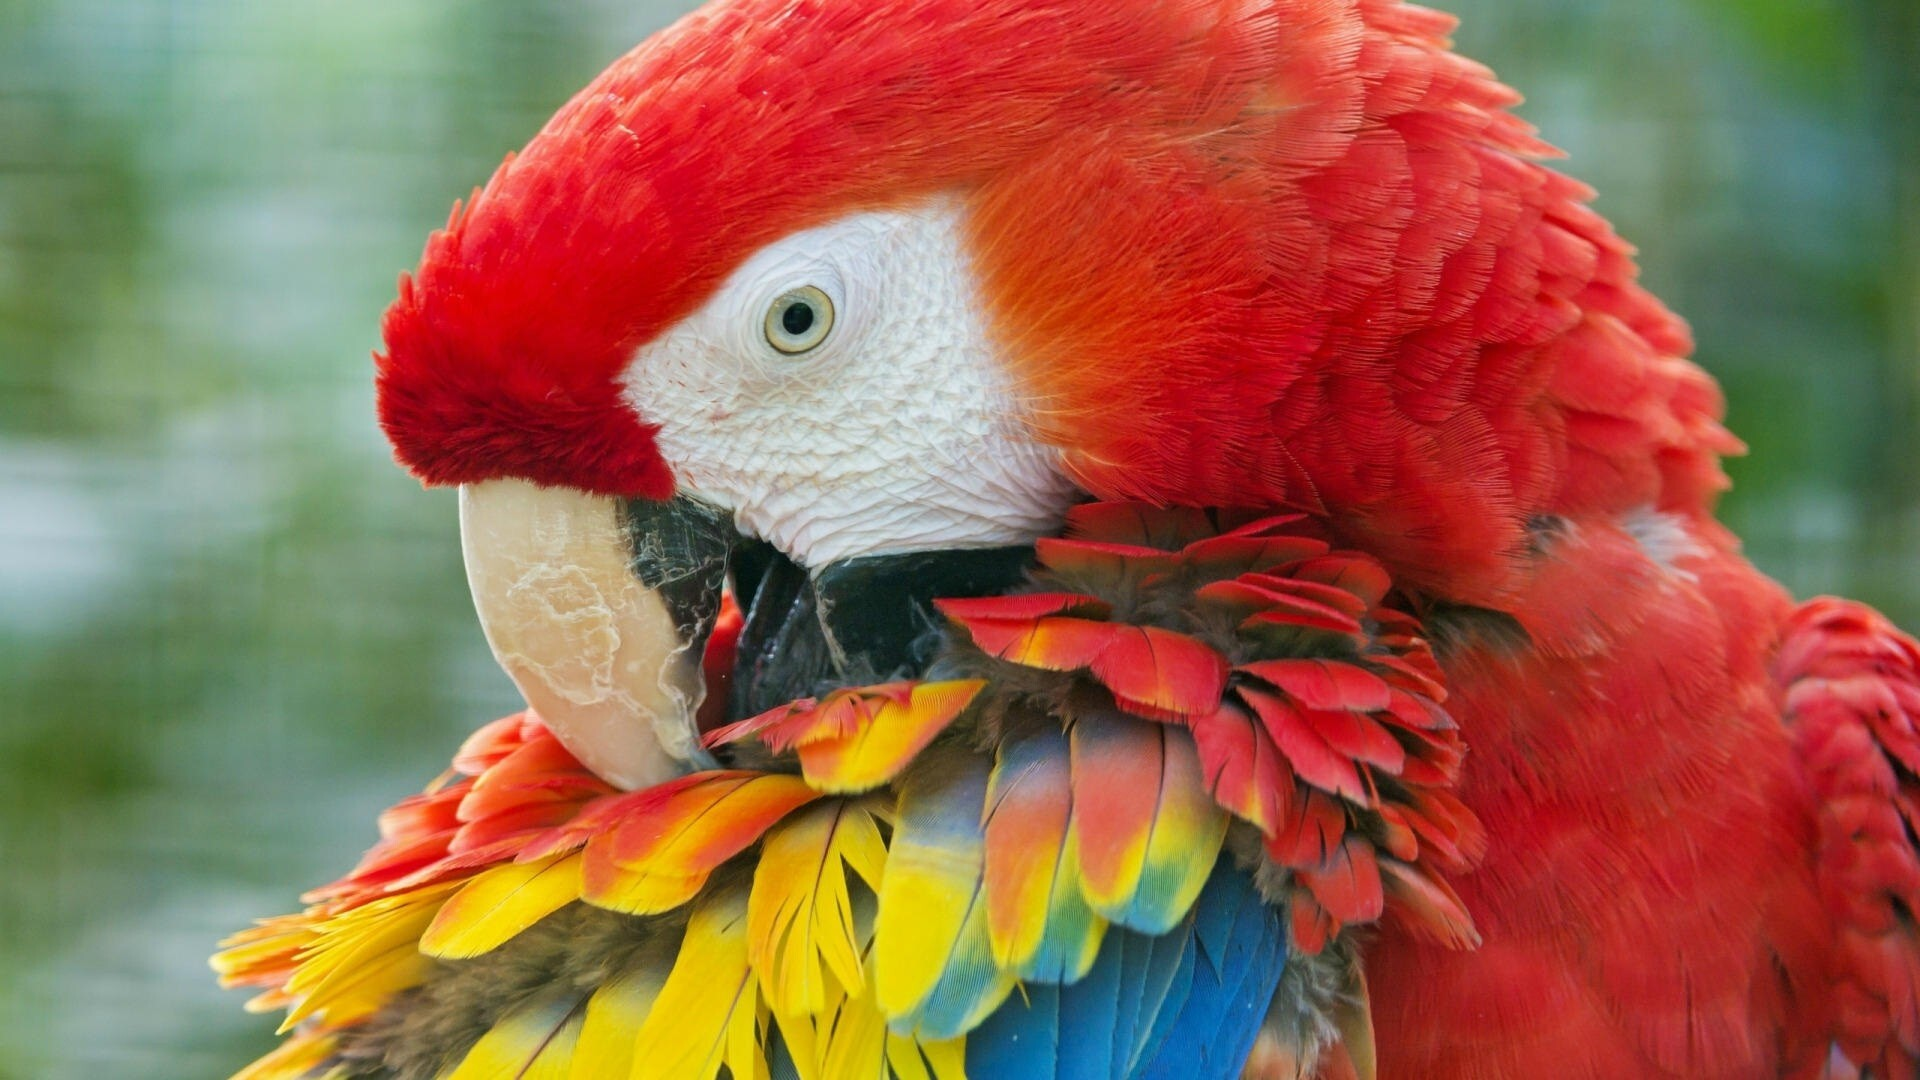 <b>Parrot</b> Wallpapers | Free Download Colorful <b>Birds HD</b> Desktop Images